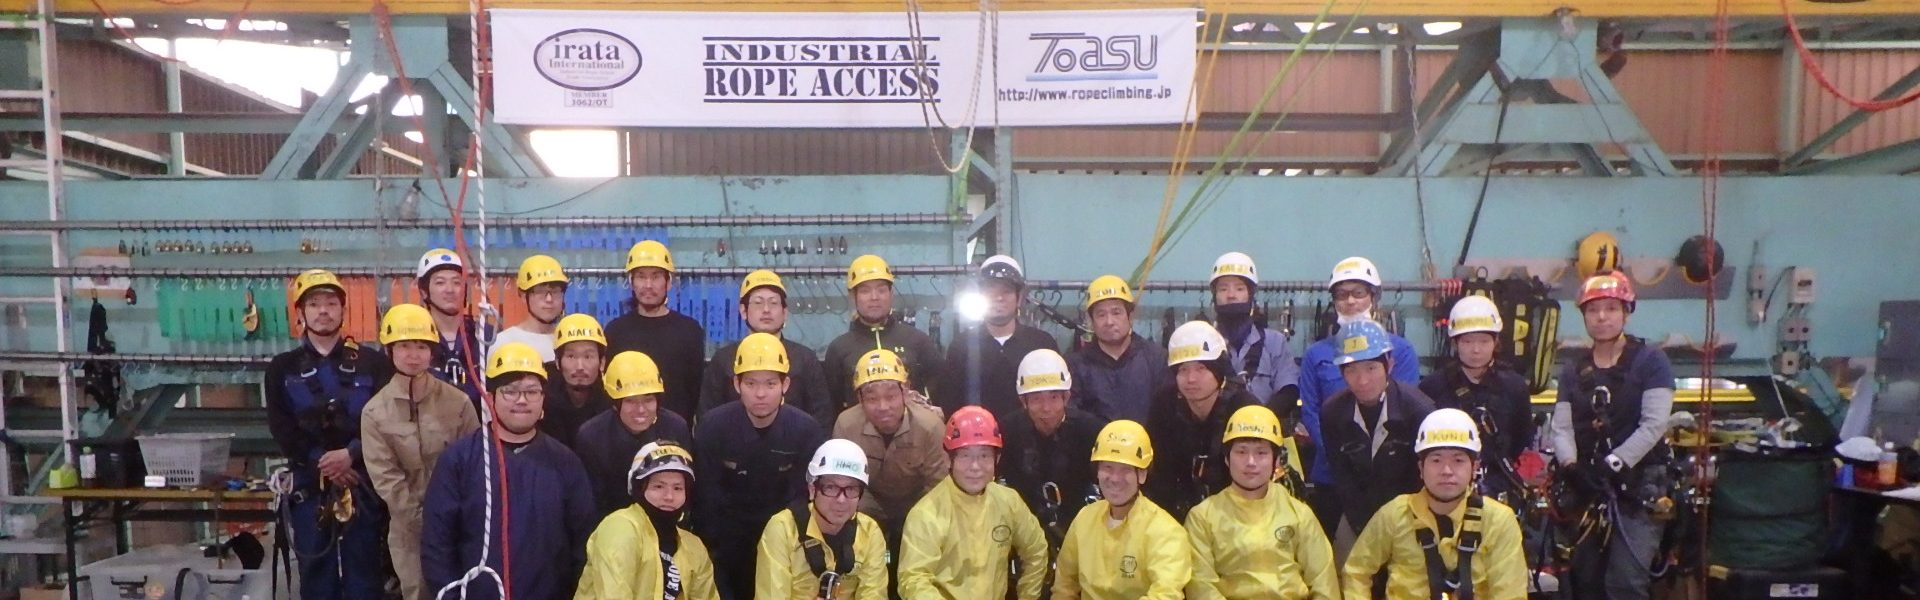 IRATA 国際 ROPEACCESS TRAINING